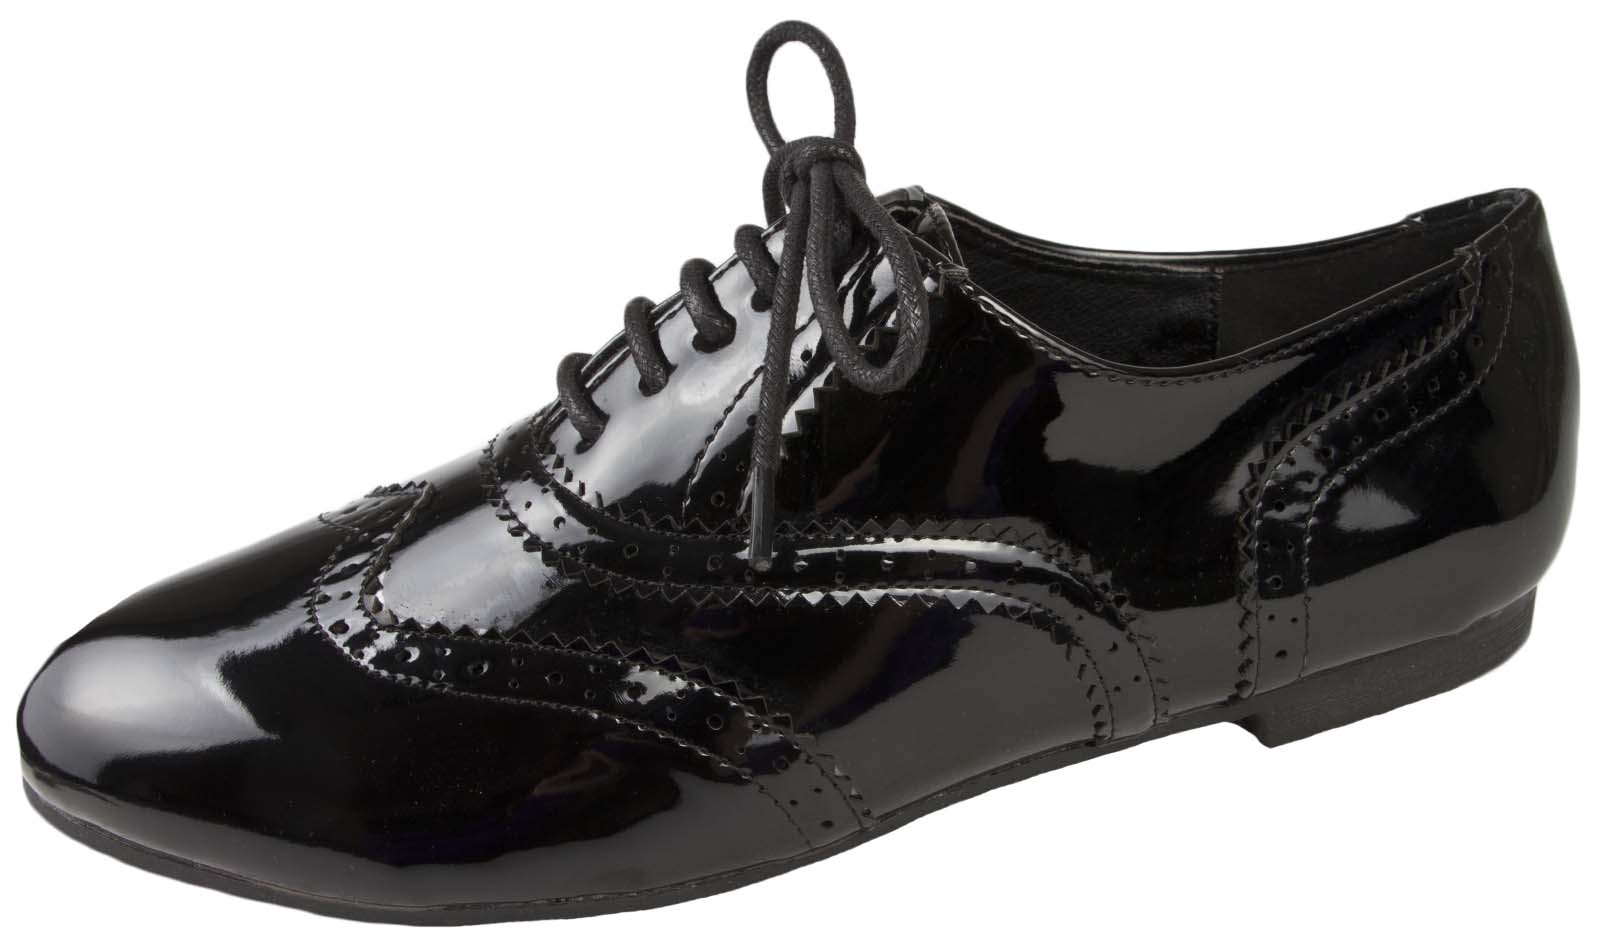 Ladies Black Patent Flat Lace Up Shoes